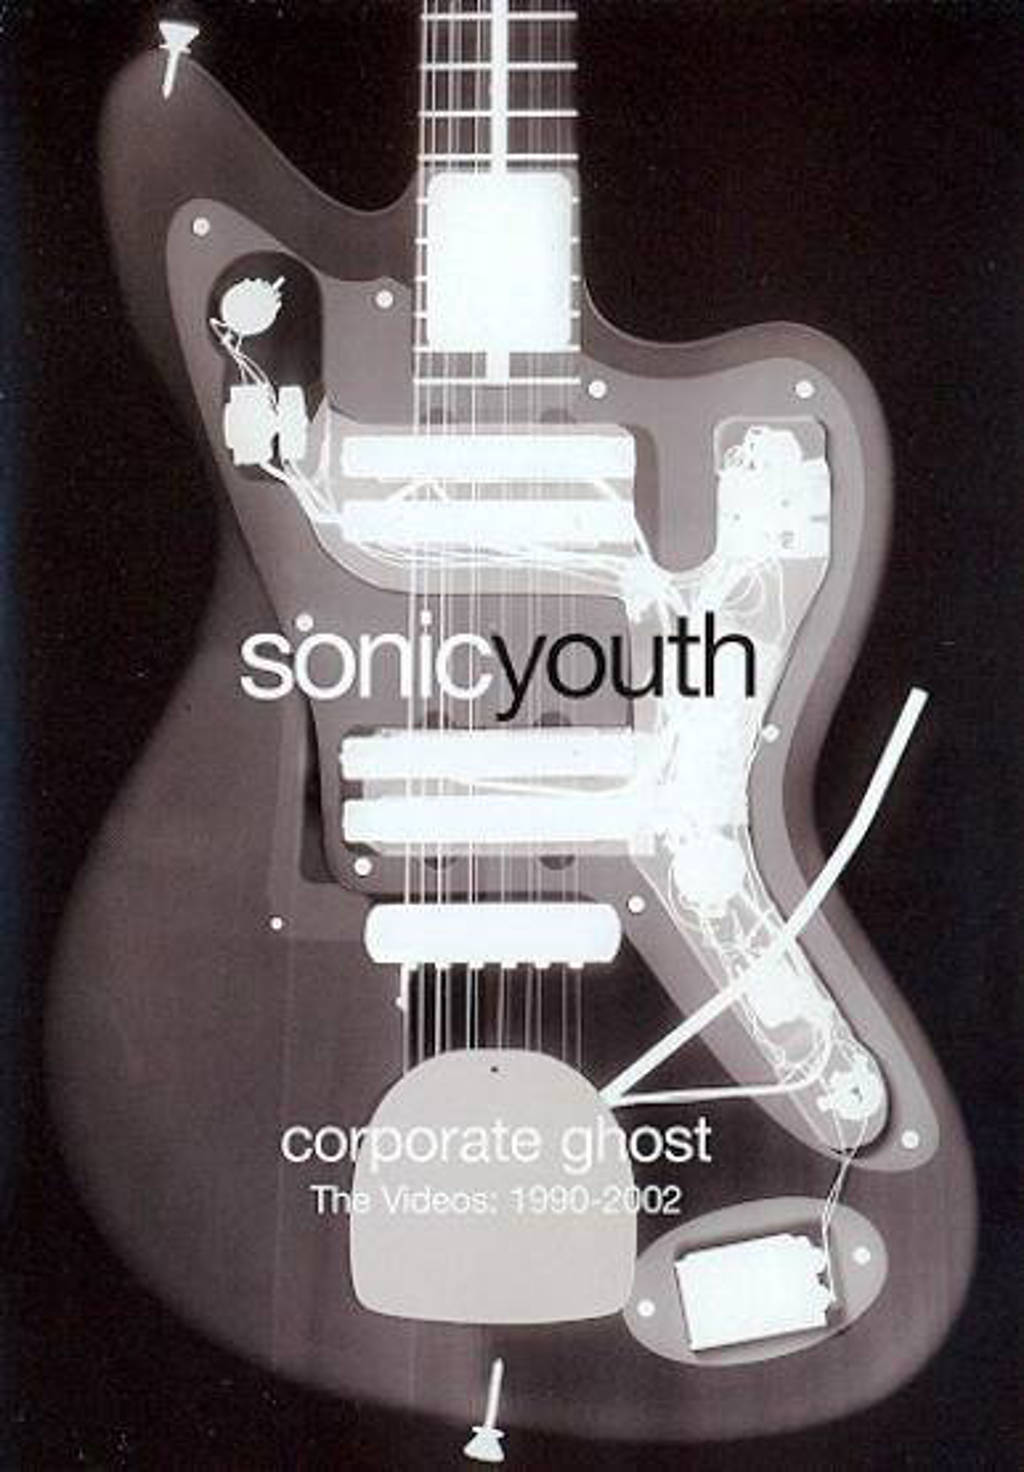 Sonic Youth - Corporate Ghost (DVD)